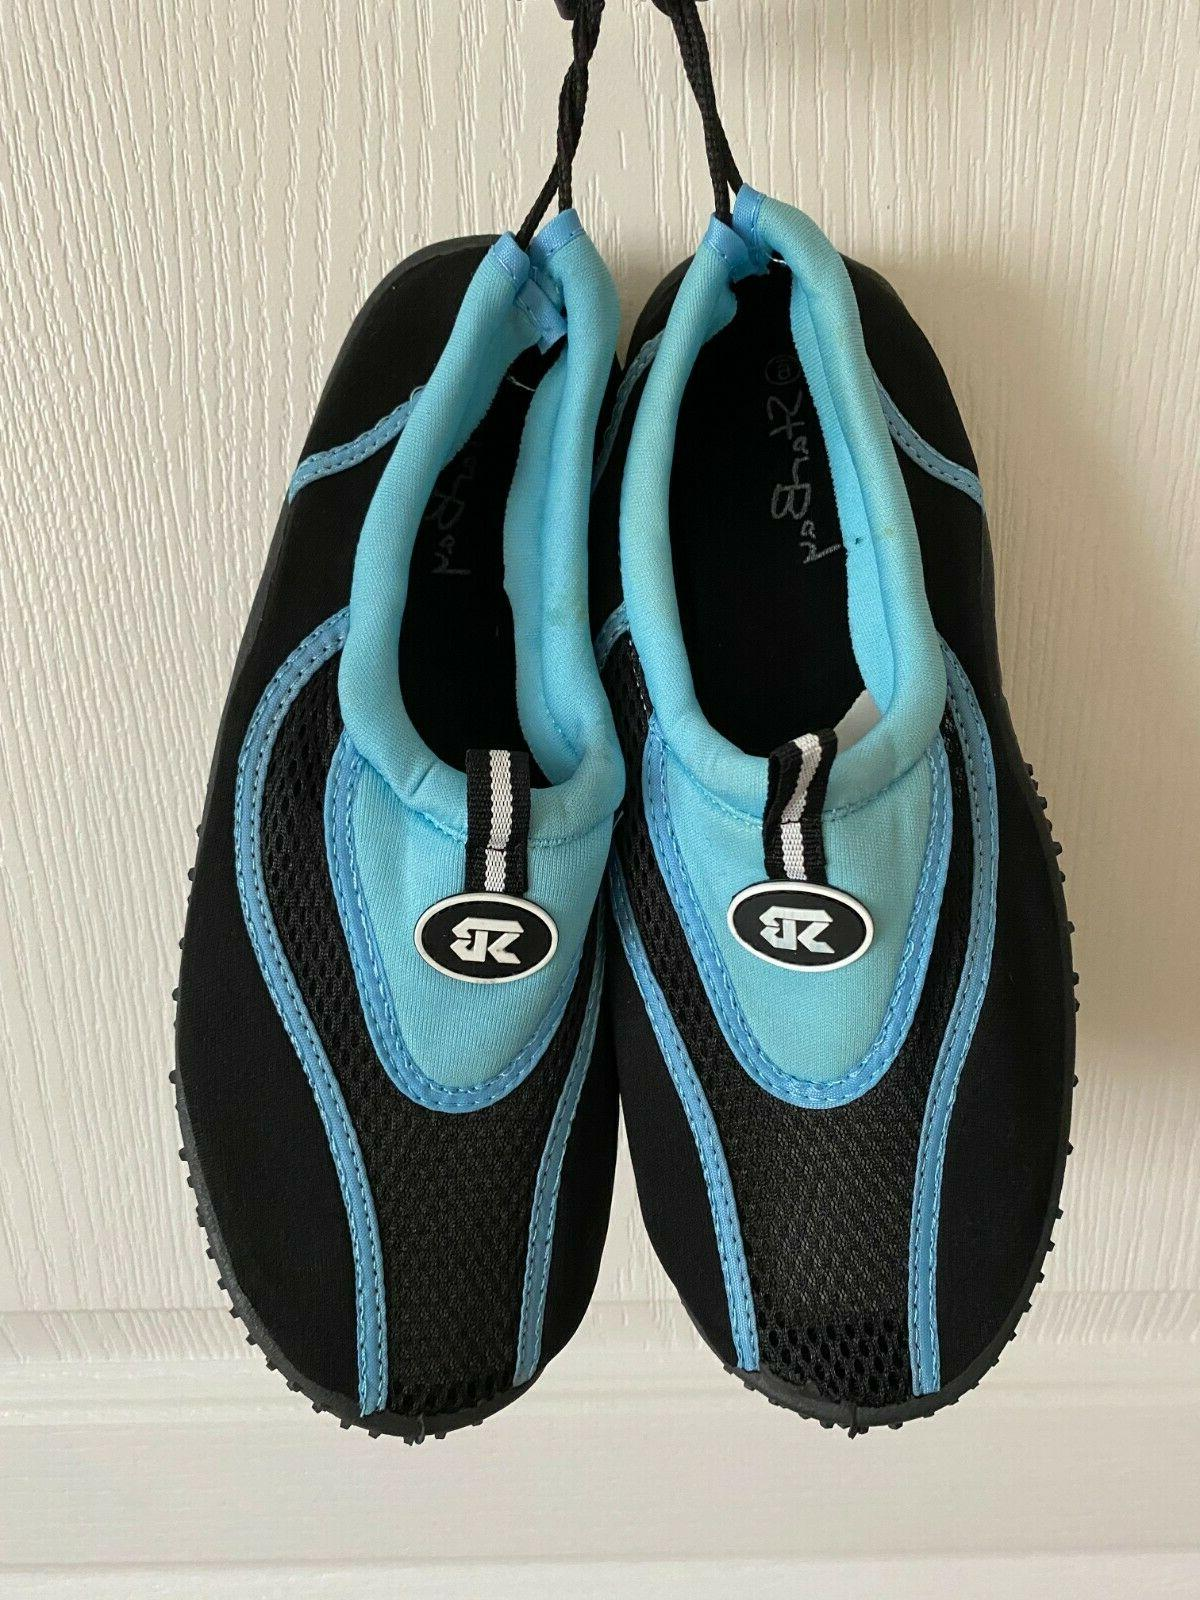 kids childrens new water shoes sz 1